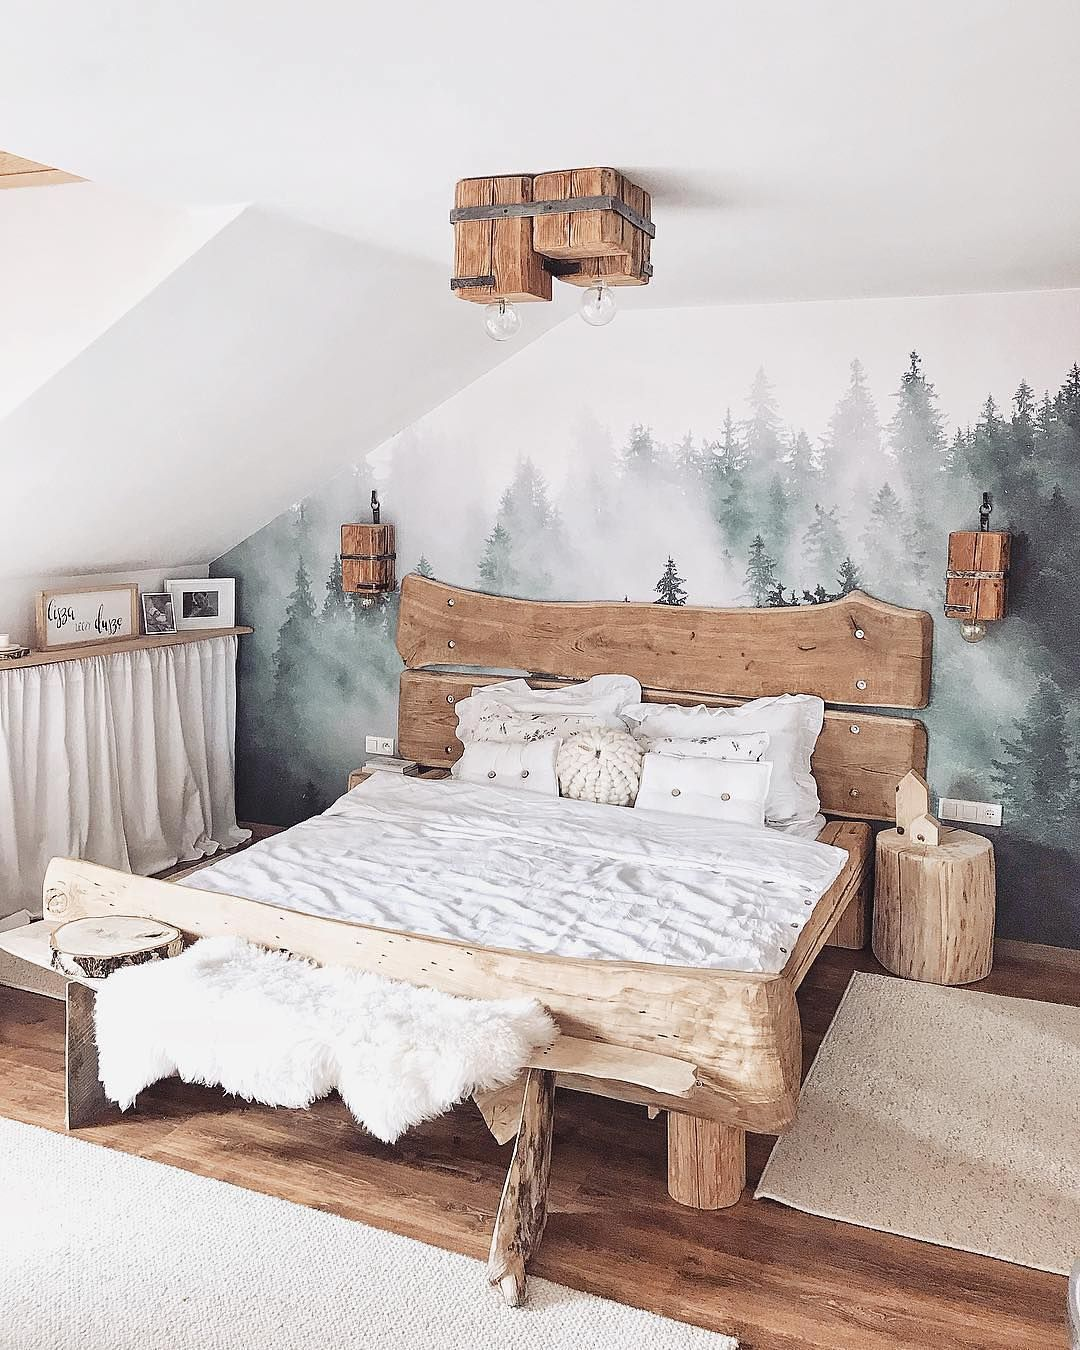 50 Sleigh Bed Inspirations For A Cozy Modern Bedroom: Q: Do You Sleep Here? A: No, I Enjoy Heaven